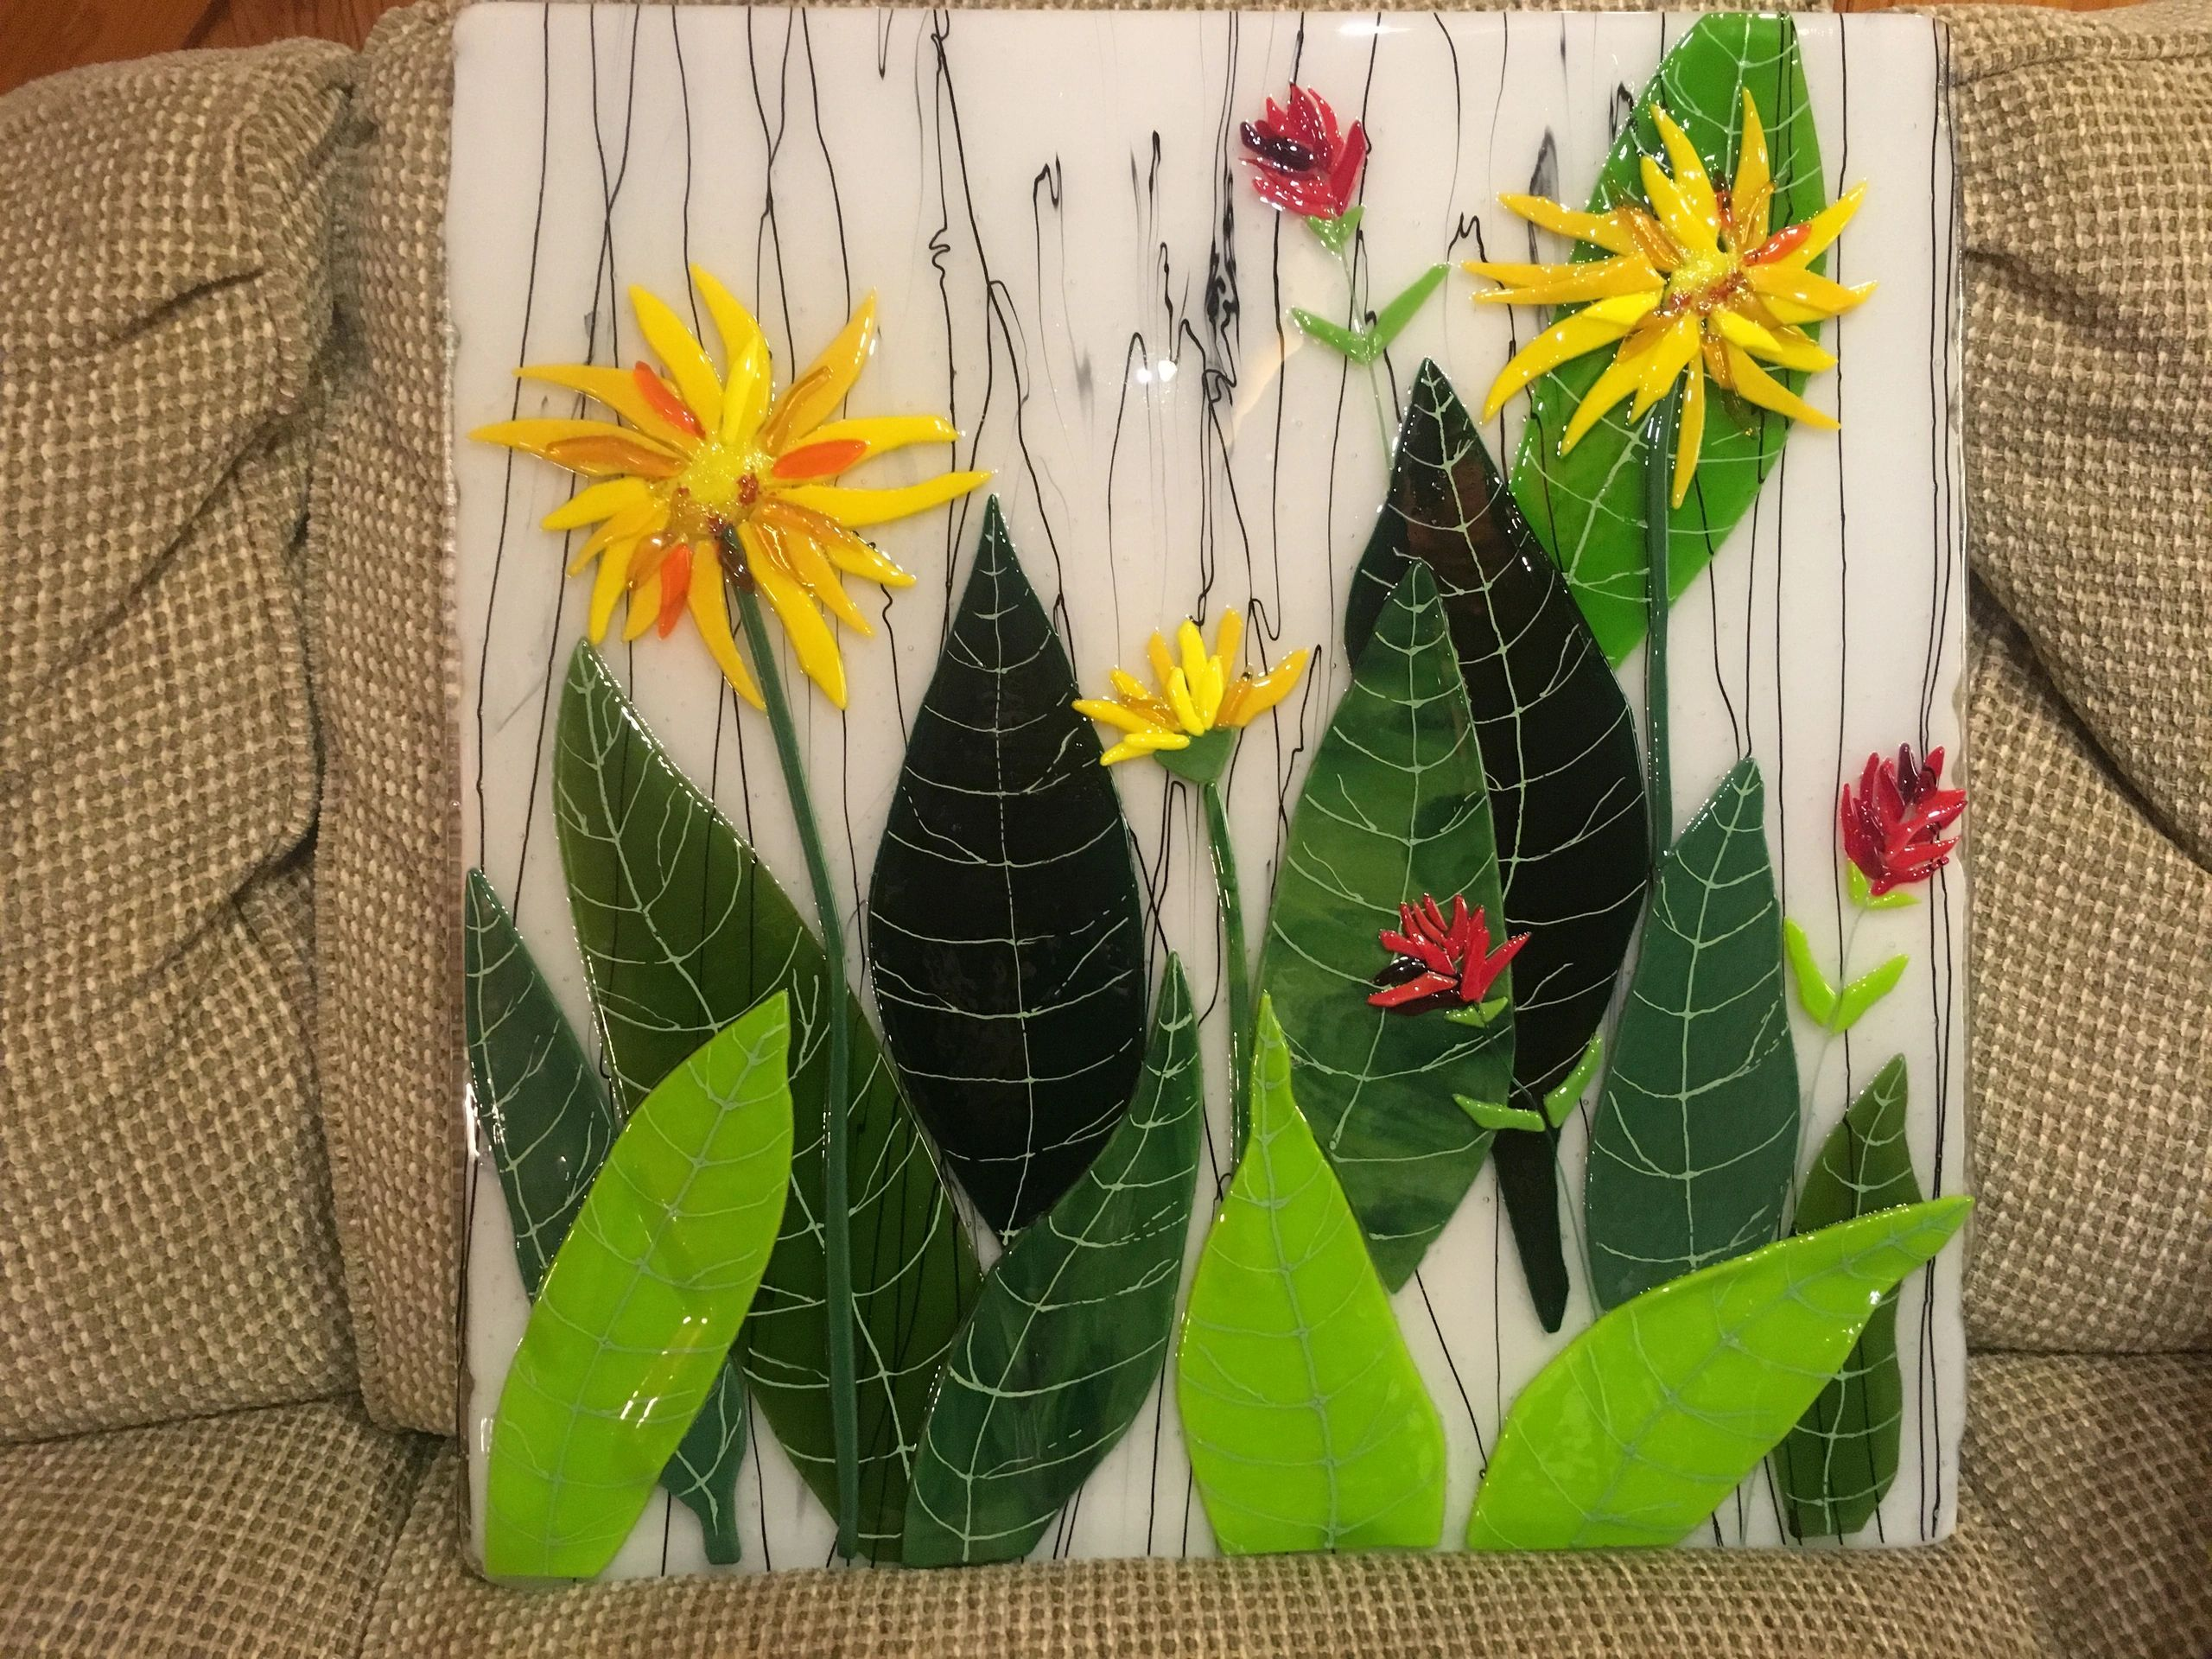 This 20 x 19 inch panel features Mules Ear, and Paintbrush, two gorgeous plants that bloom in Tahoe.